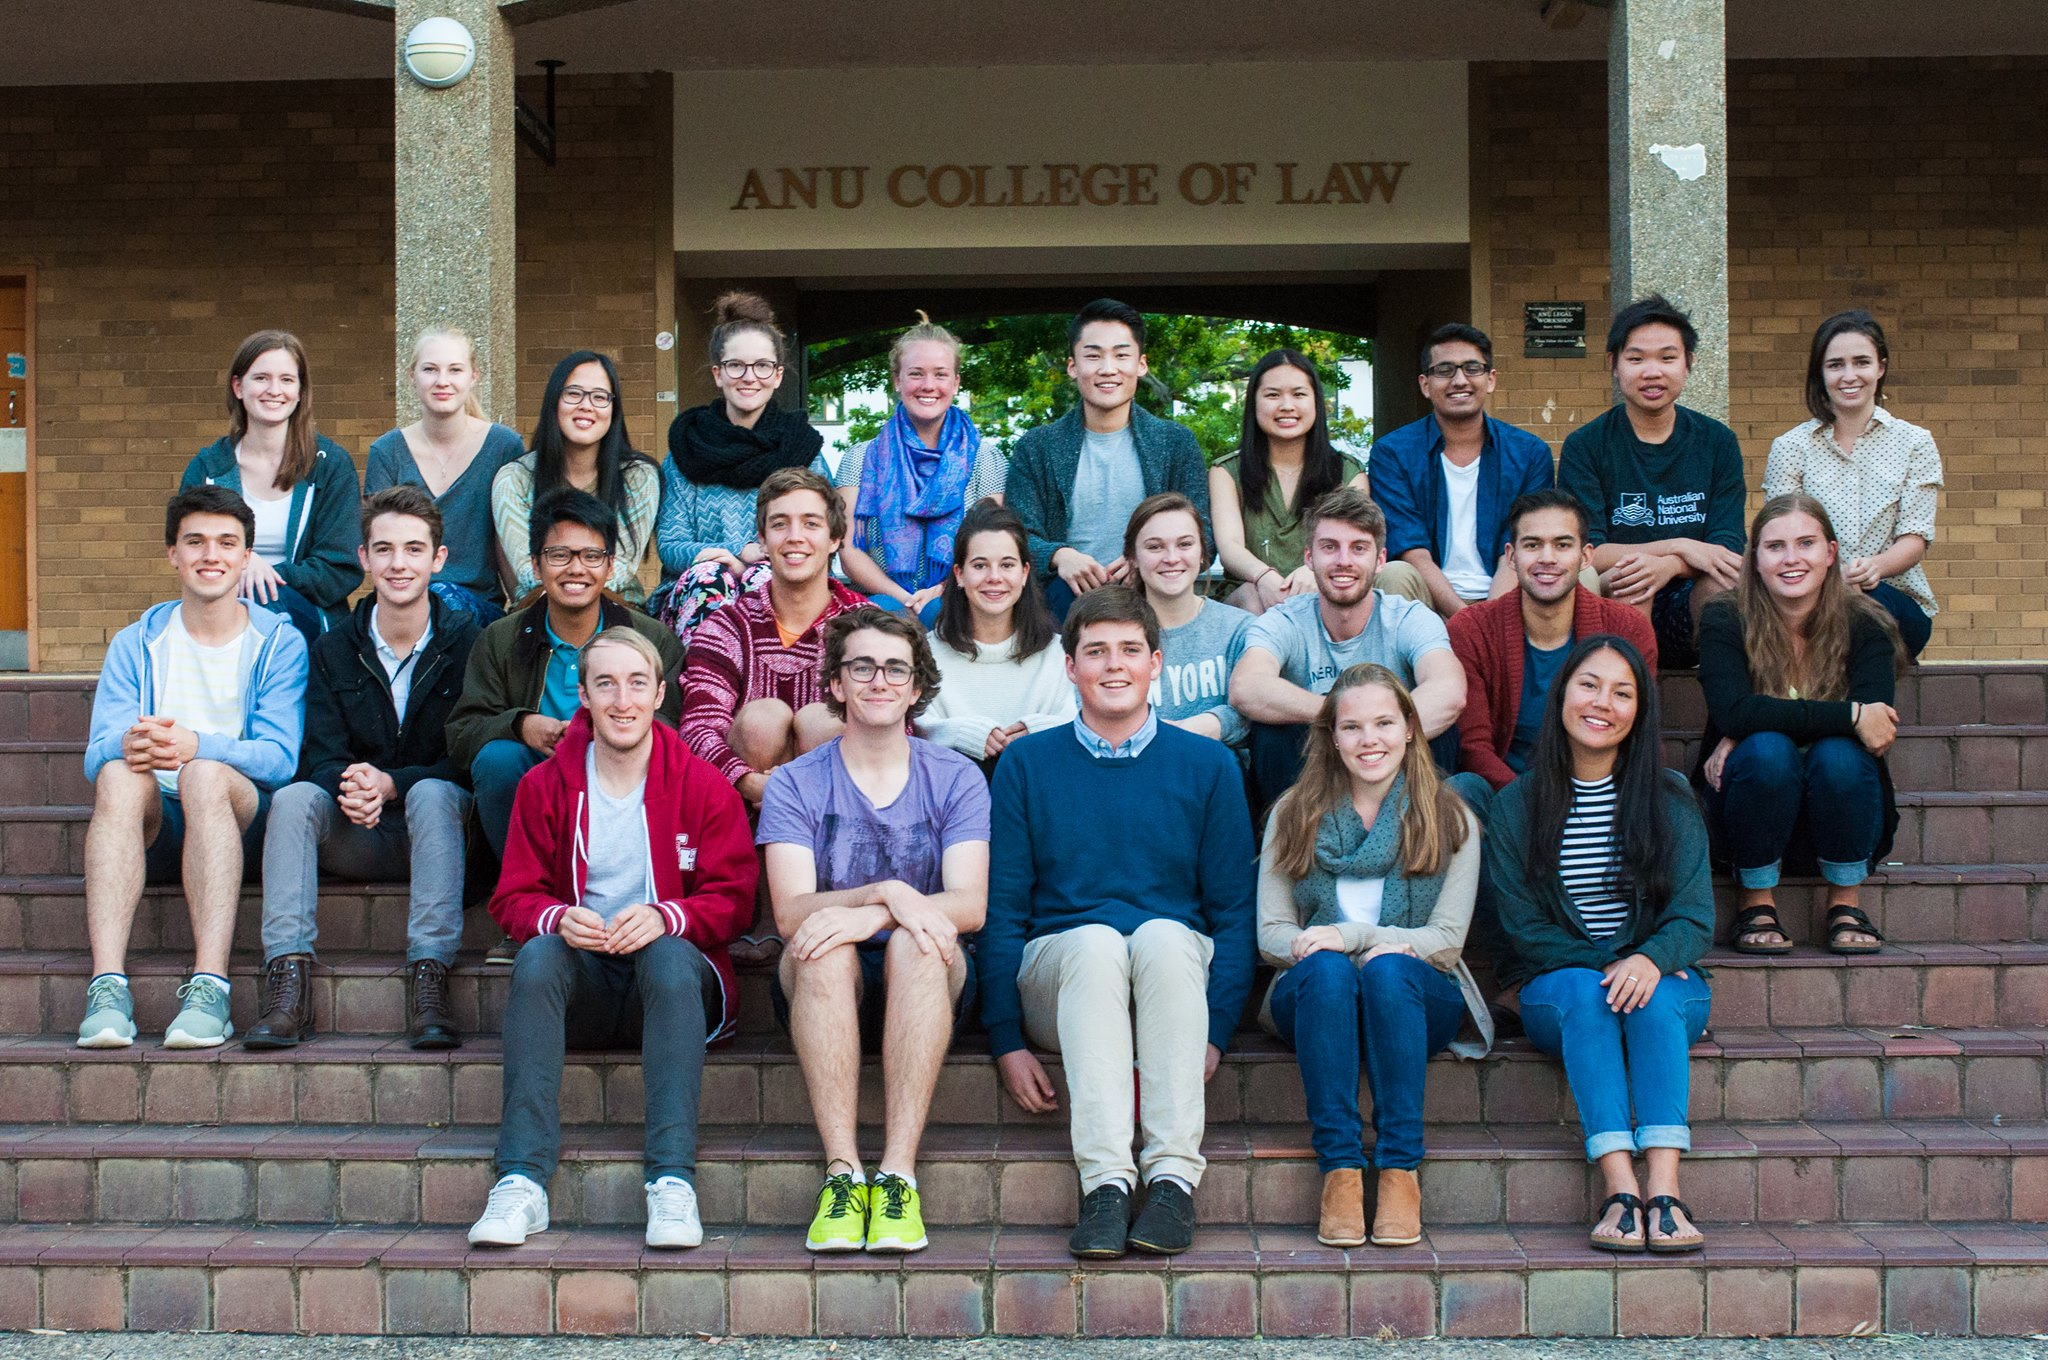 2015 ANU LSS Committee